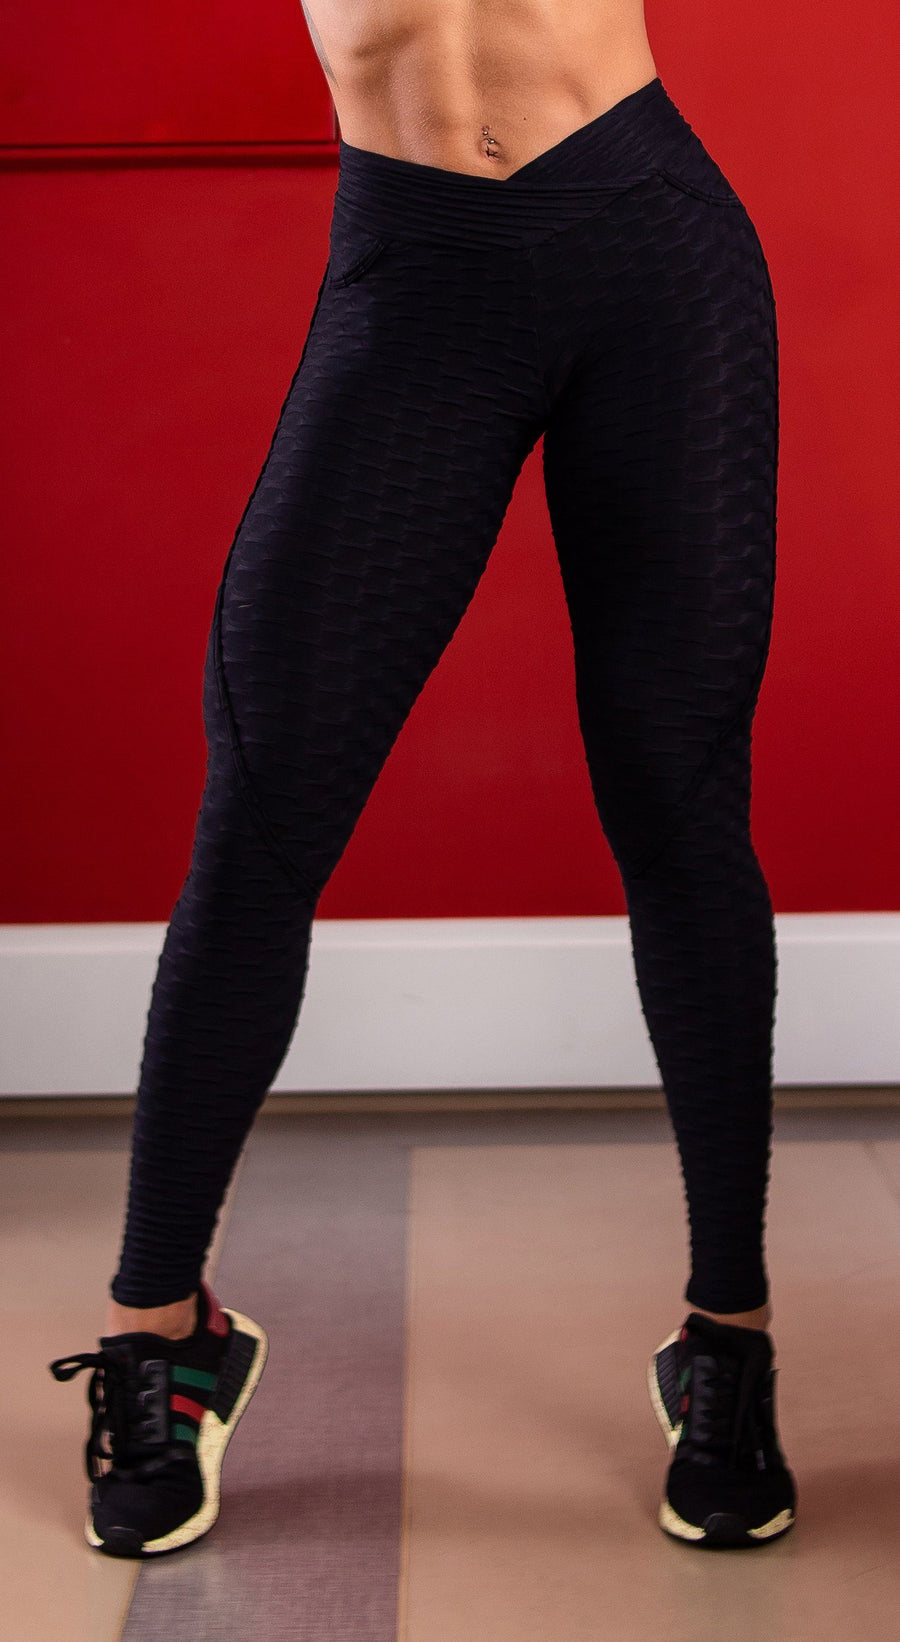 Anti Cellulite Textured Heart Booty Effect Black Leggings